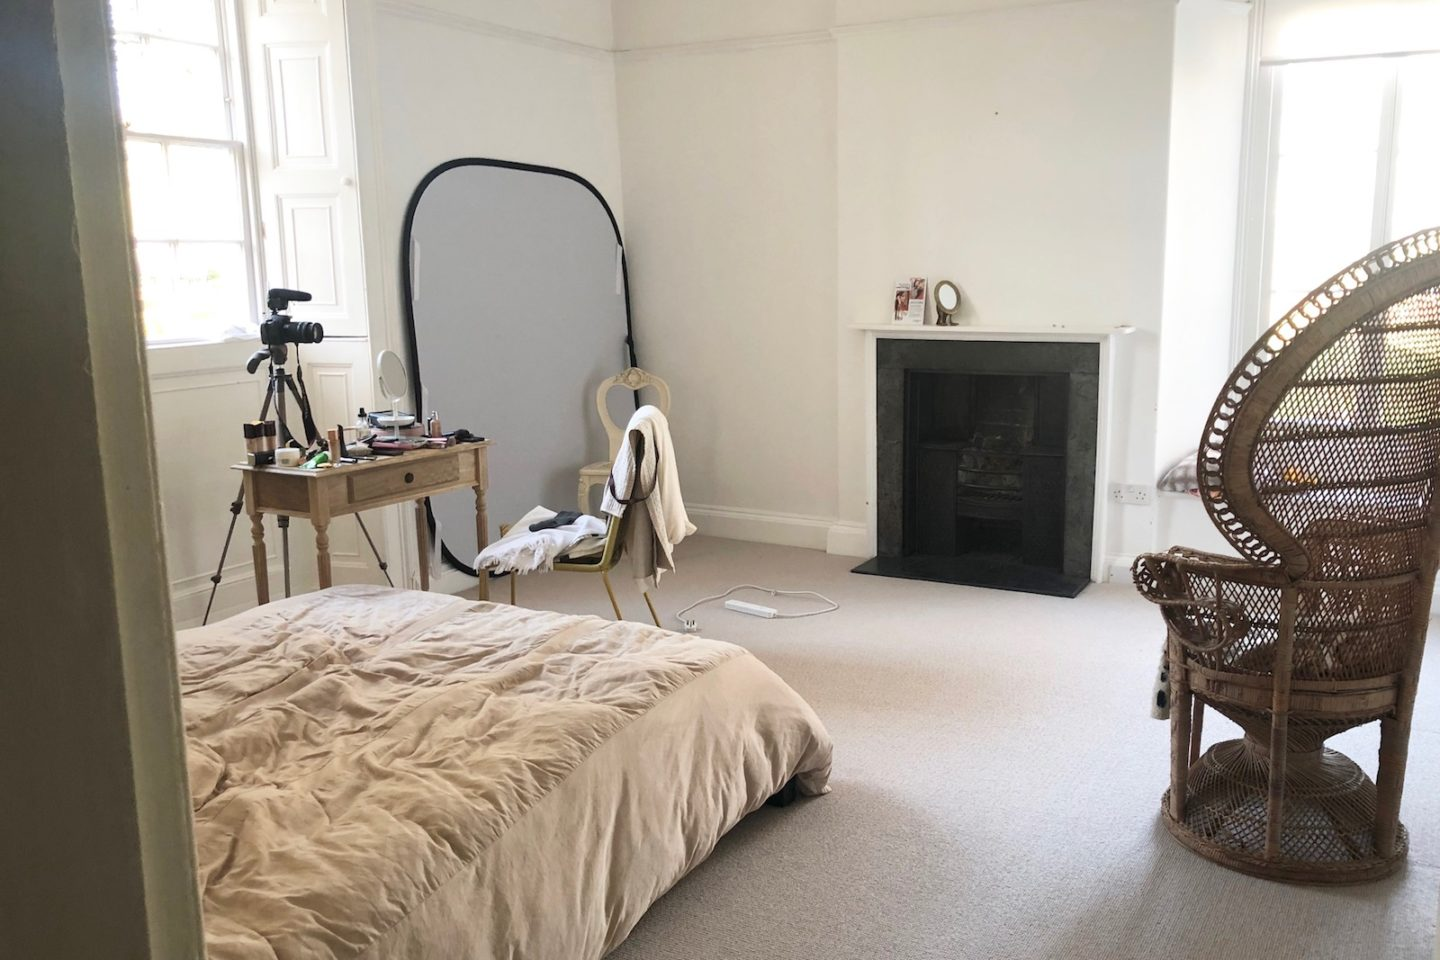 ruth crilly studio before makeover